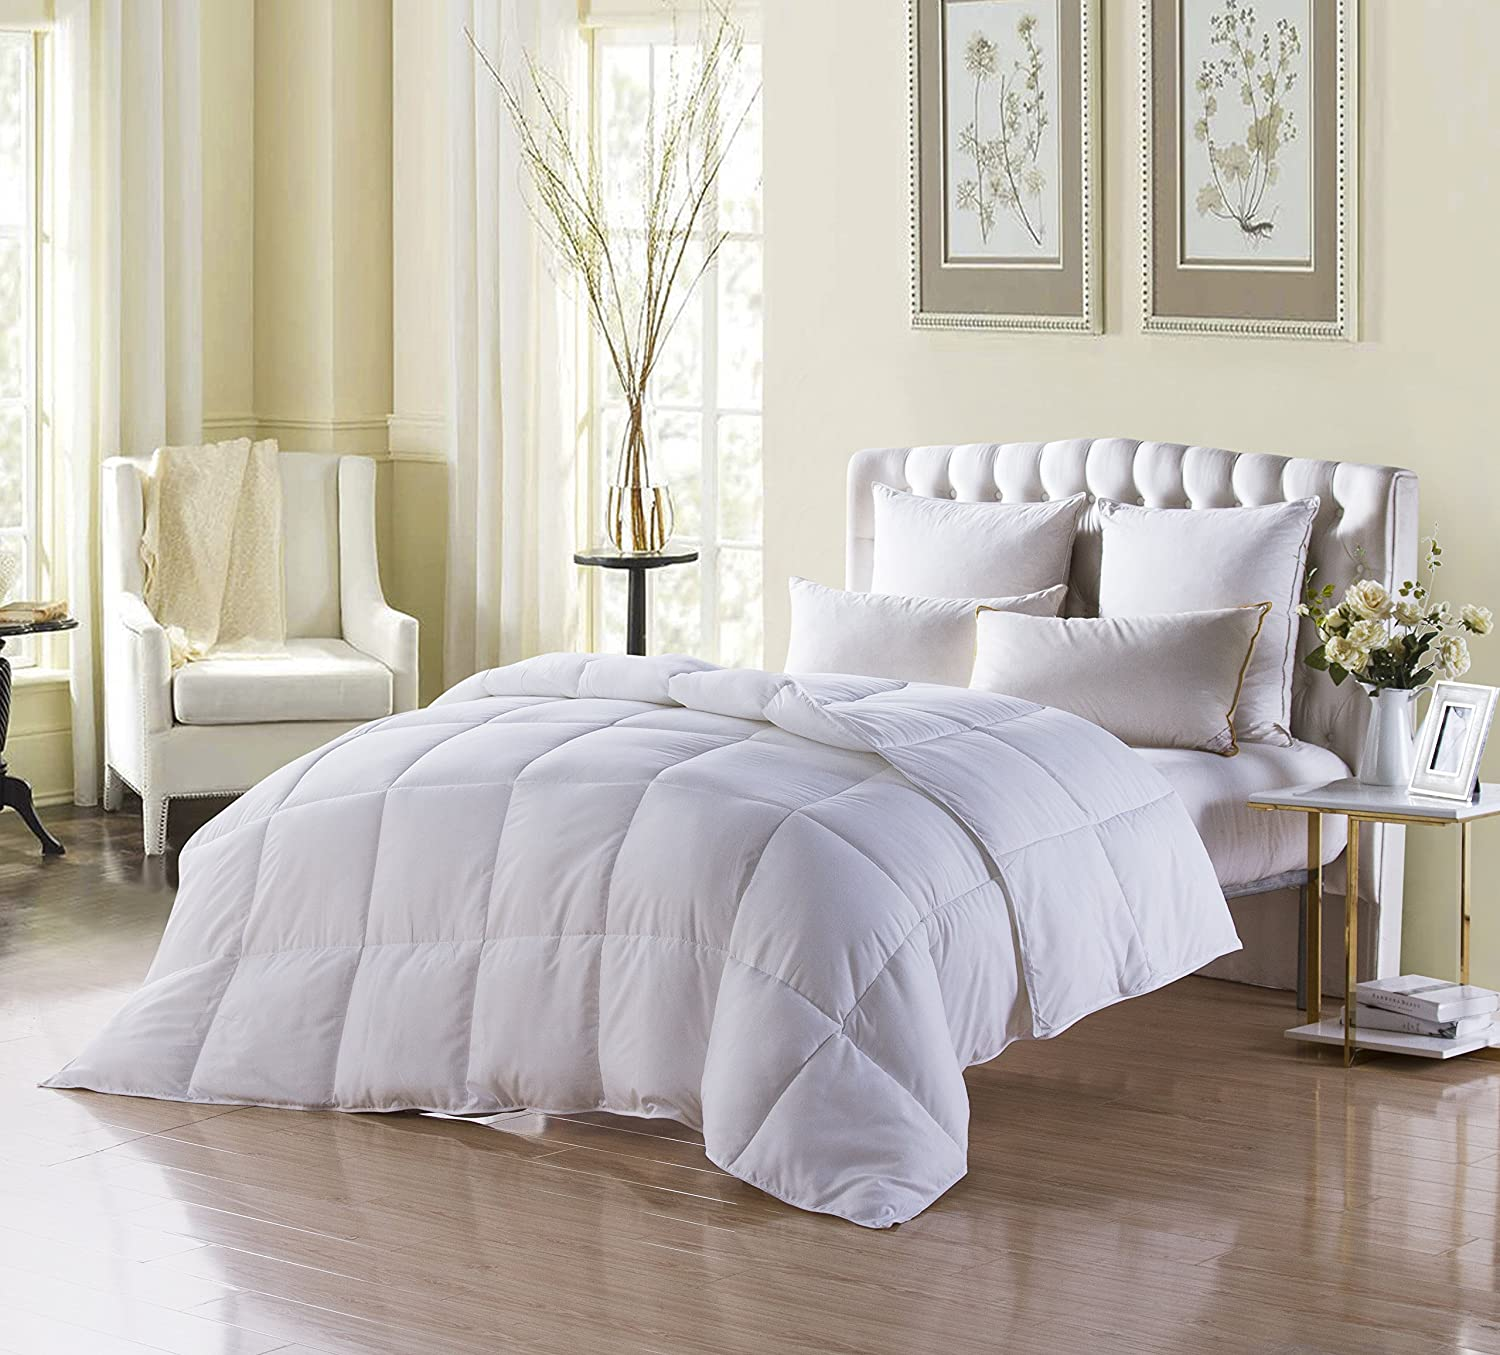 Down Alternative Comforter (White,King) - Ultra Soft Brushed Microfiber